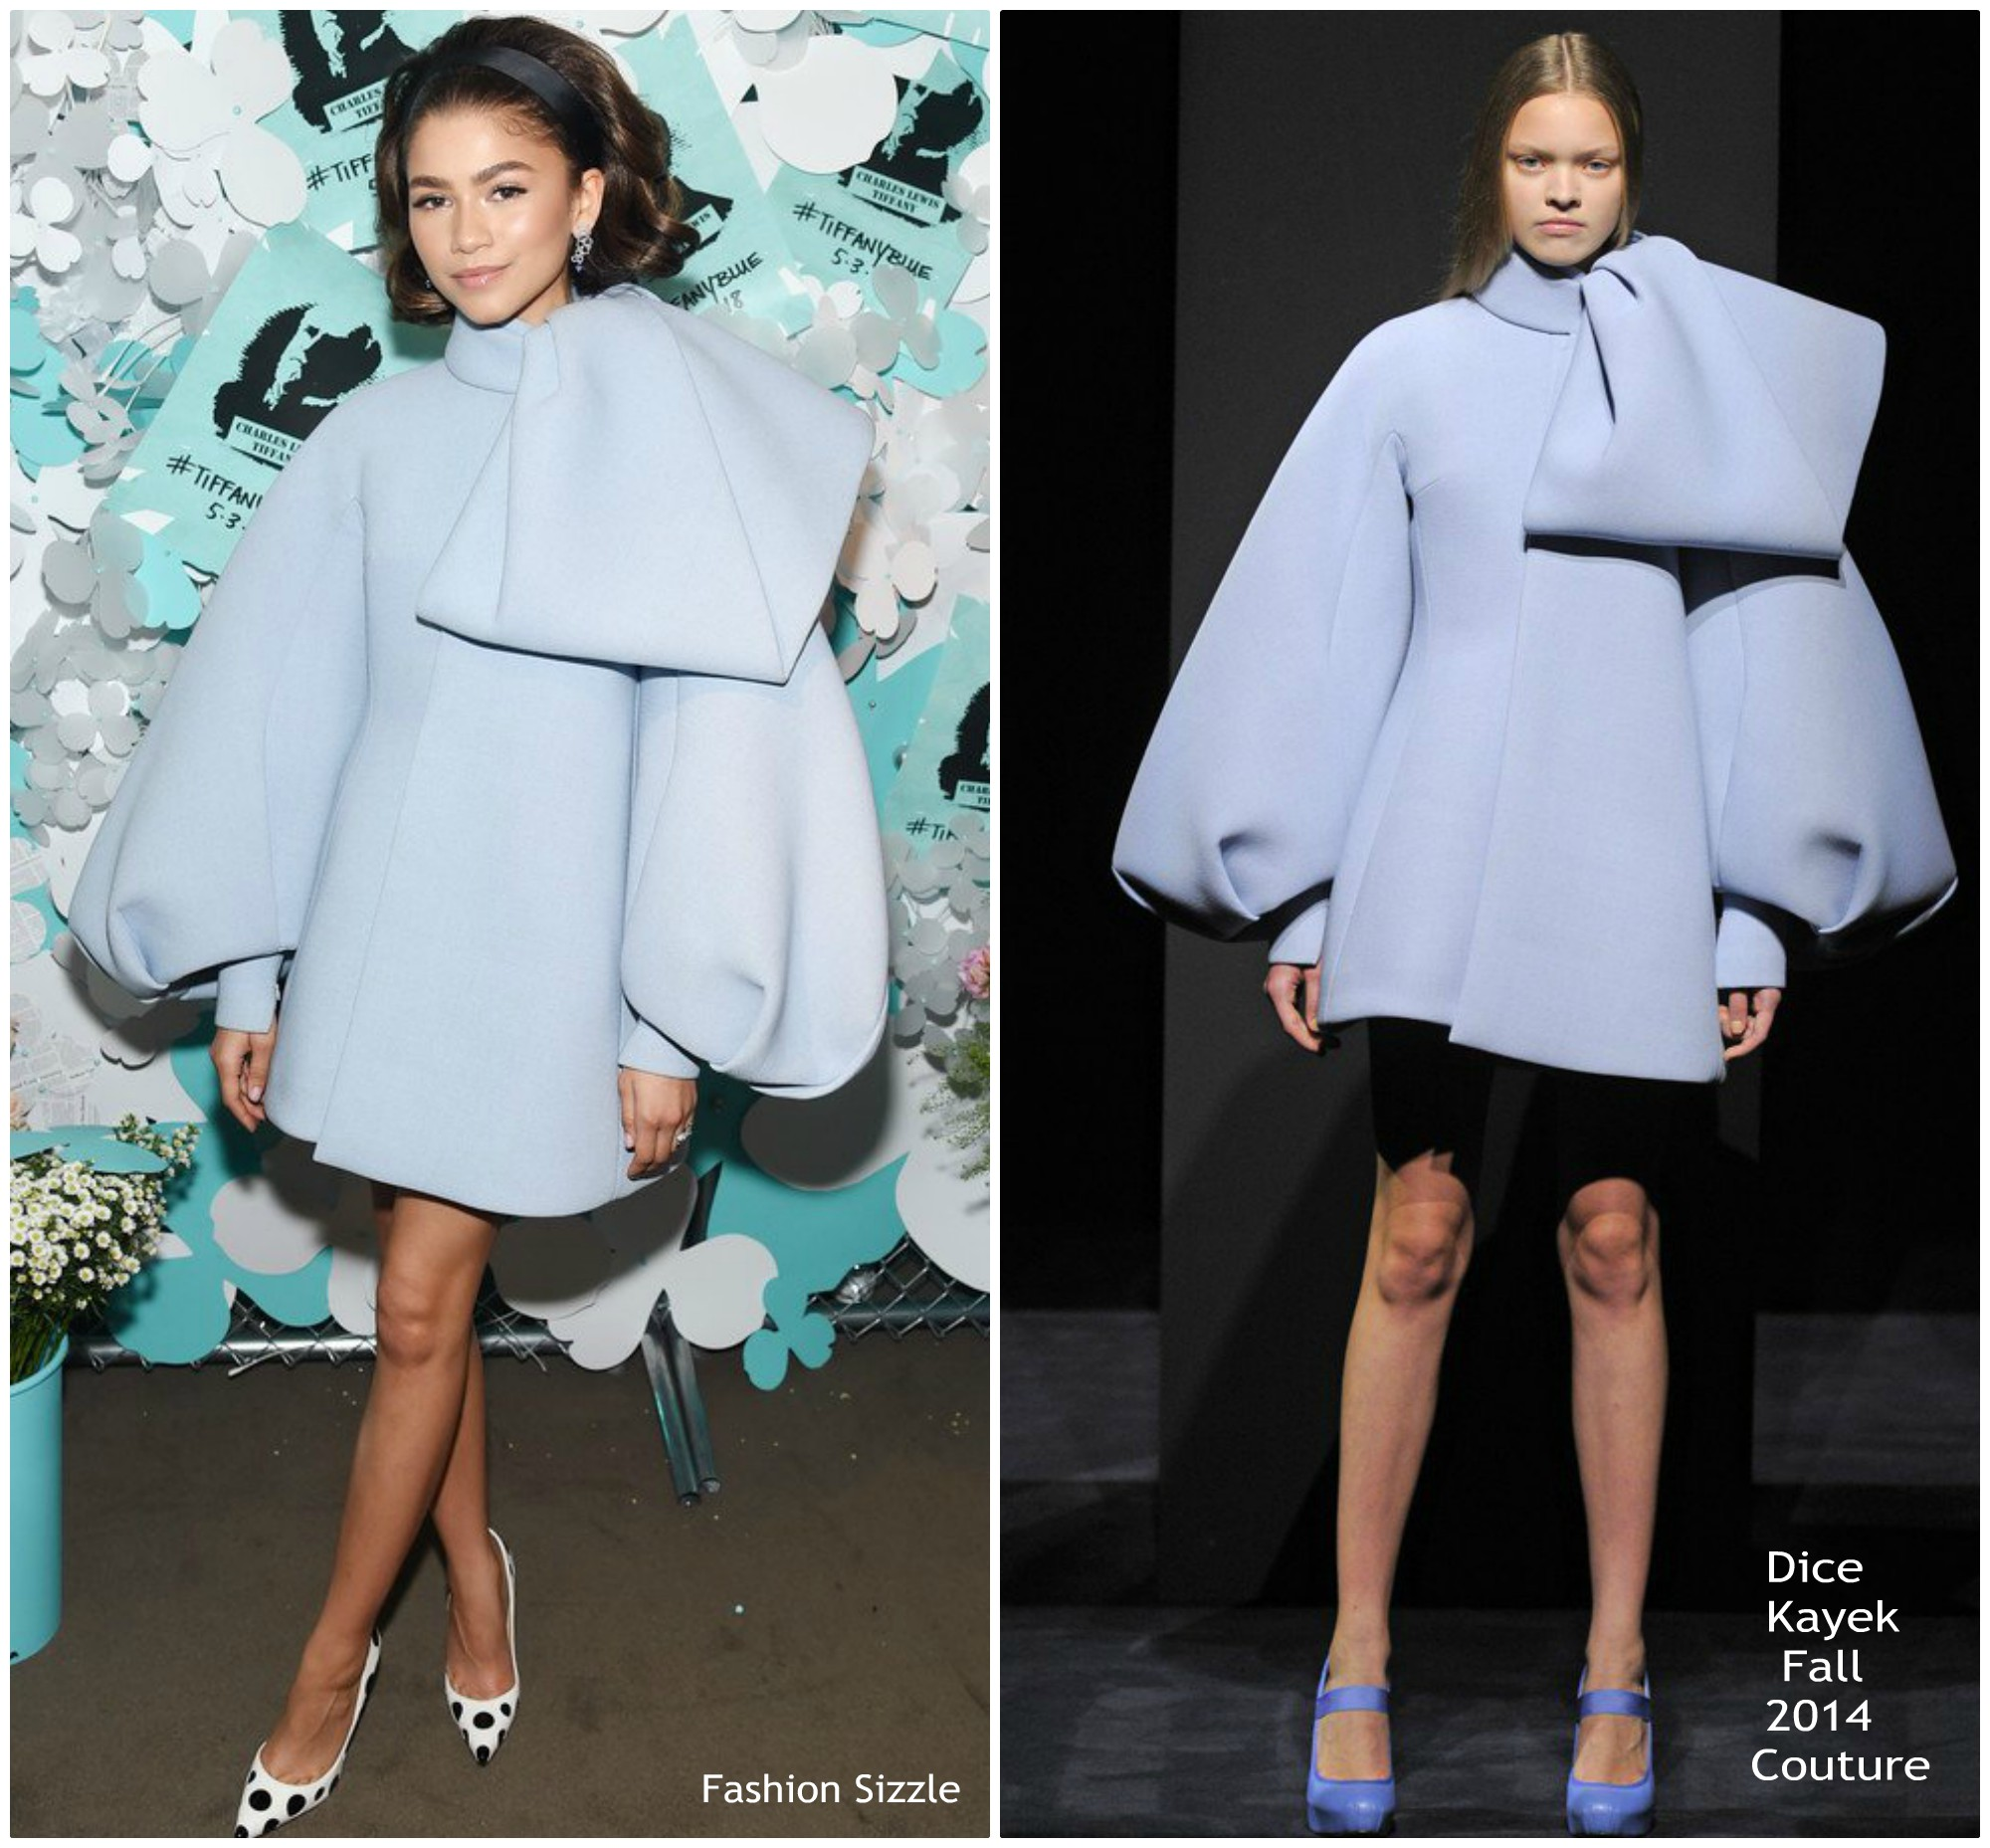 zendaya-coleman-in-dice-kayek-couture-tiffany-co-paper-flowers-event-and-believe-in-dreams-launch-party